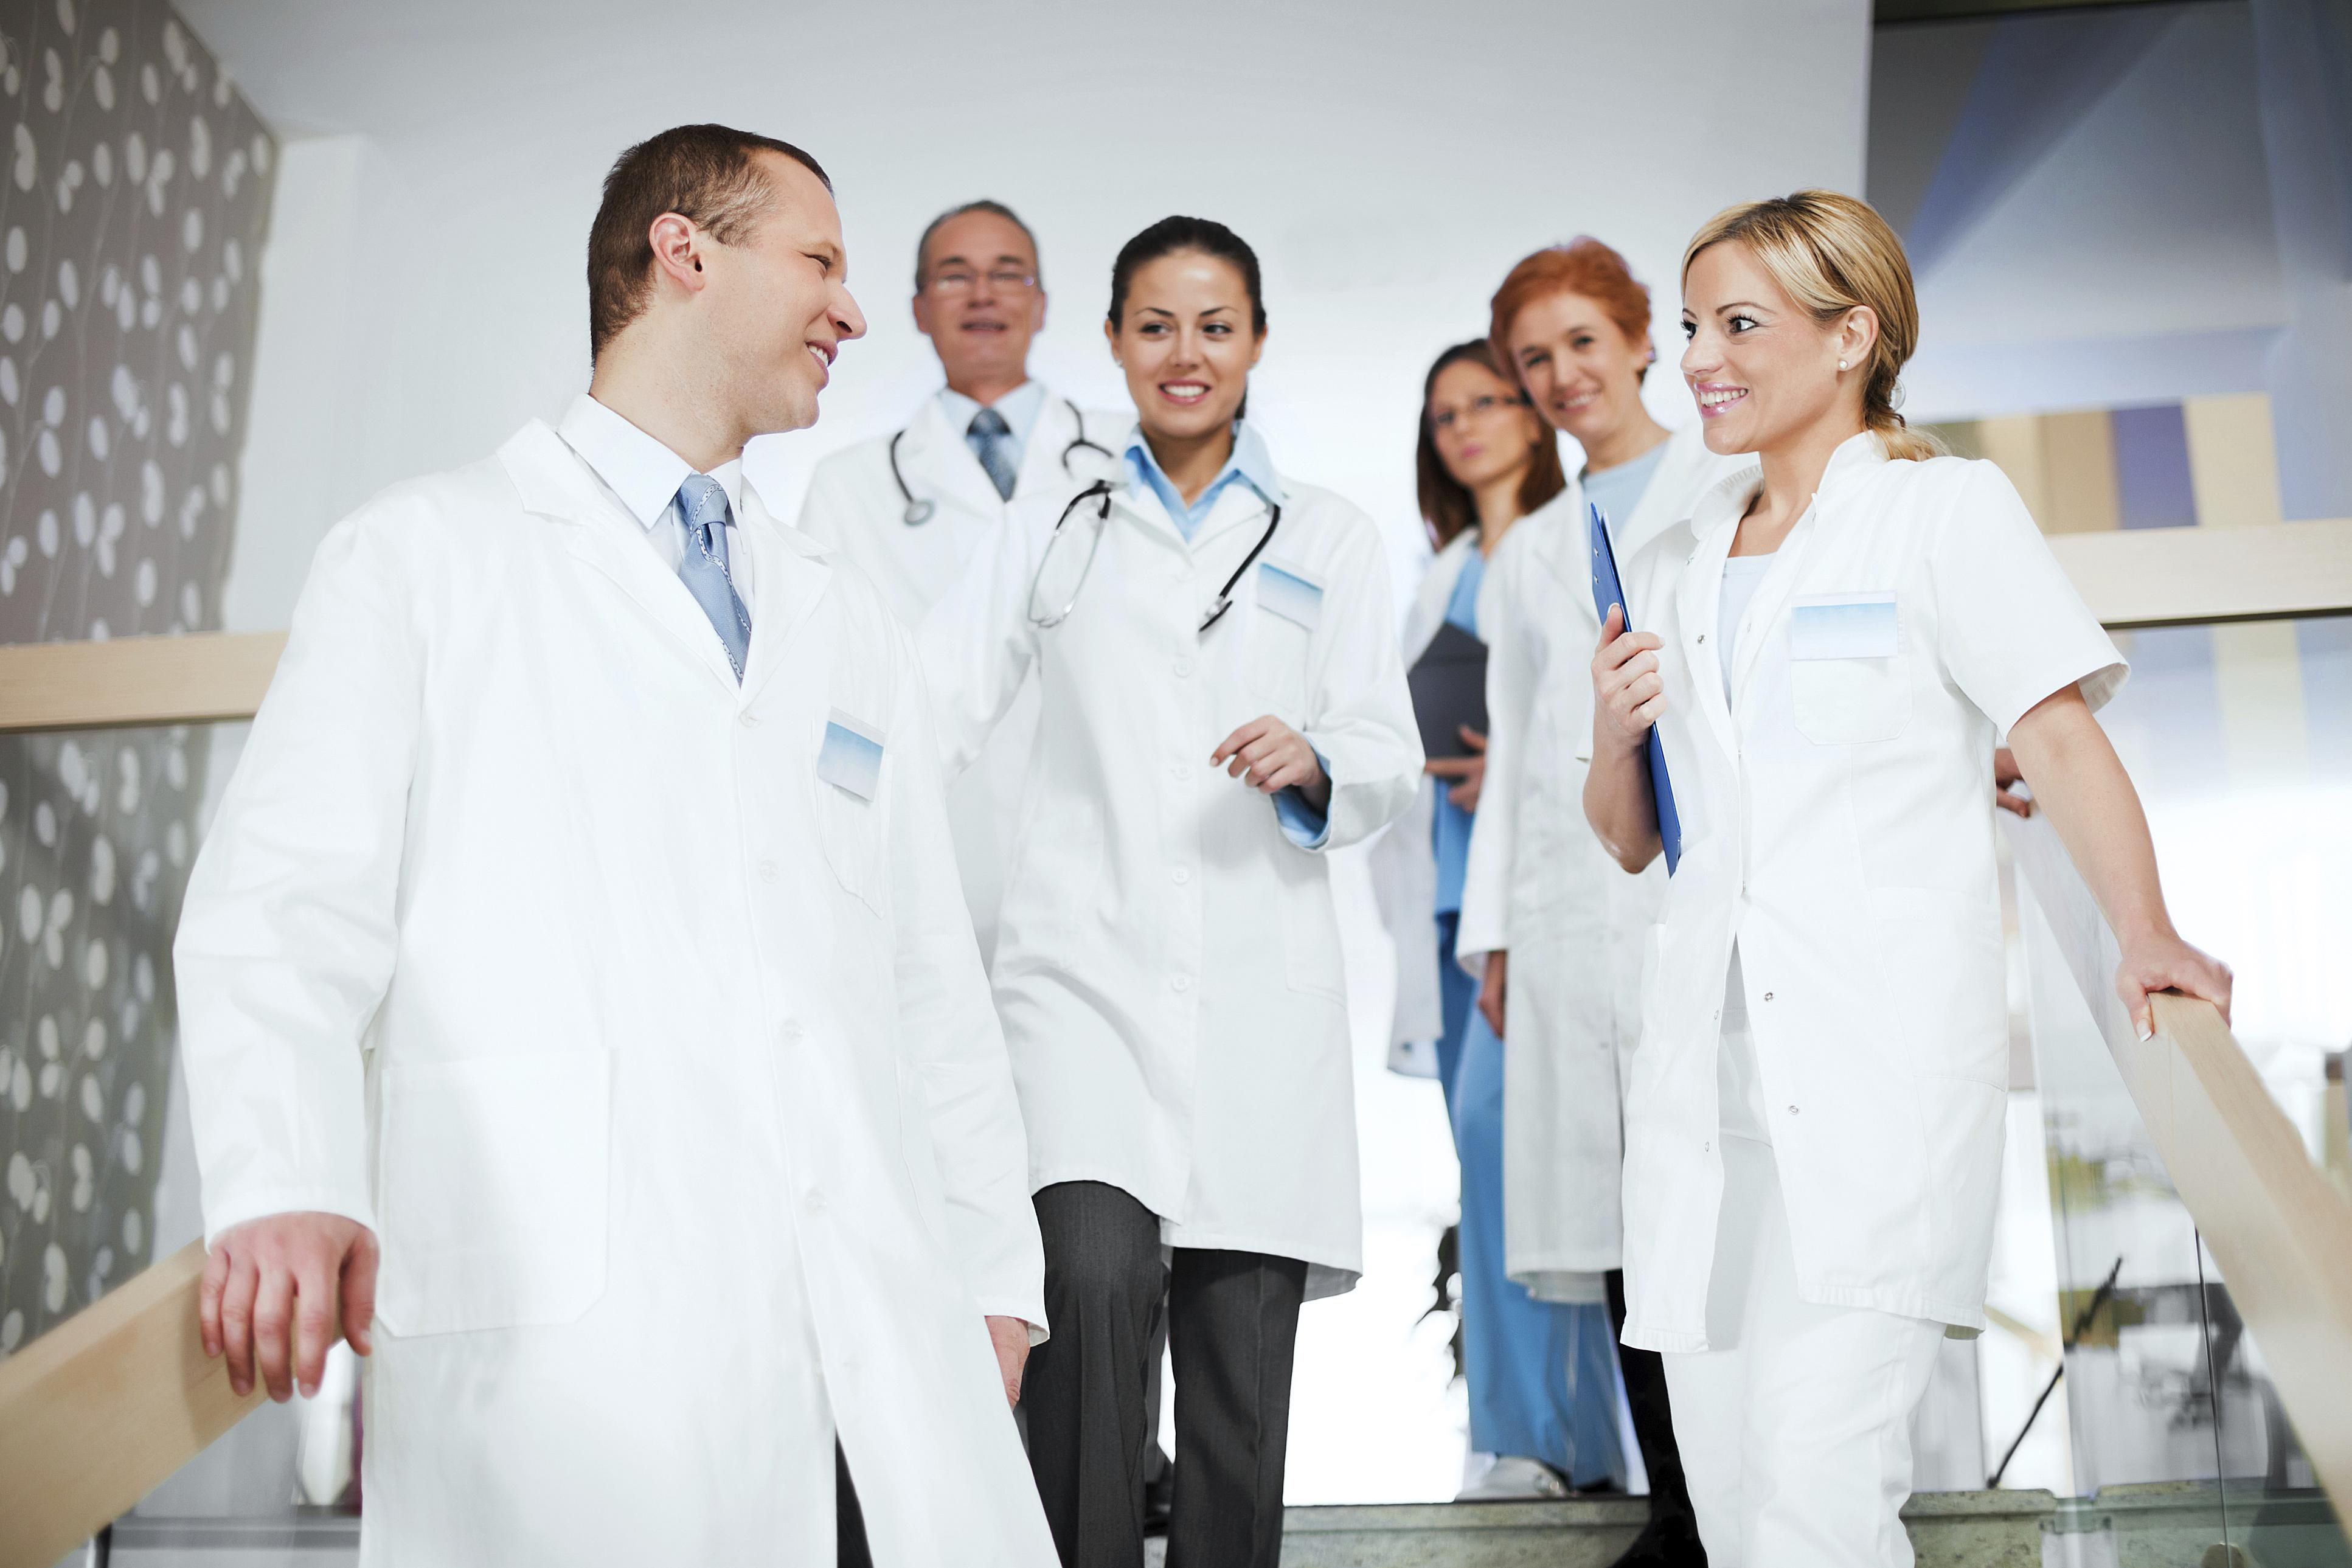 Best Practice For Staffing An Emergency Room